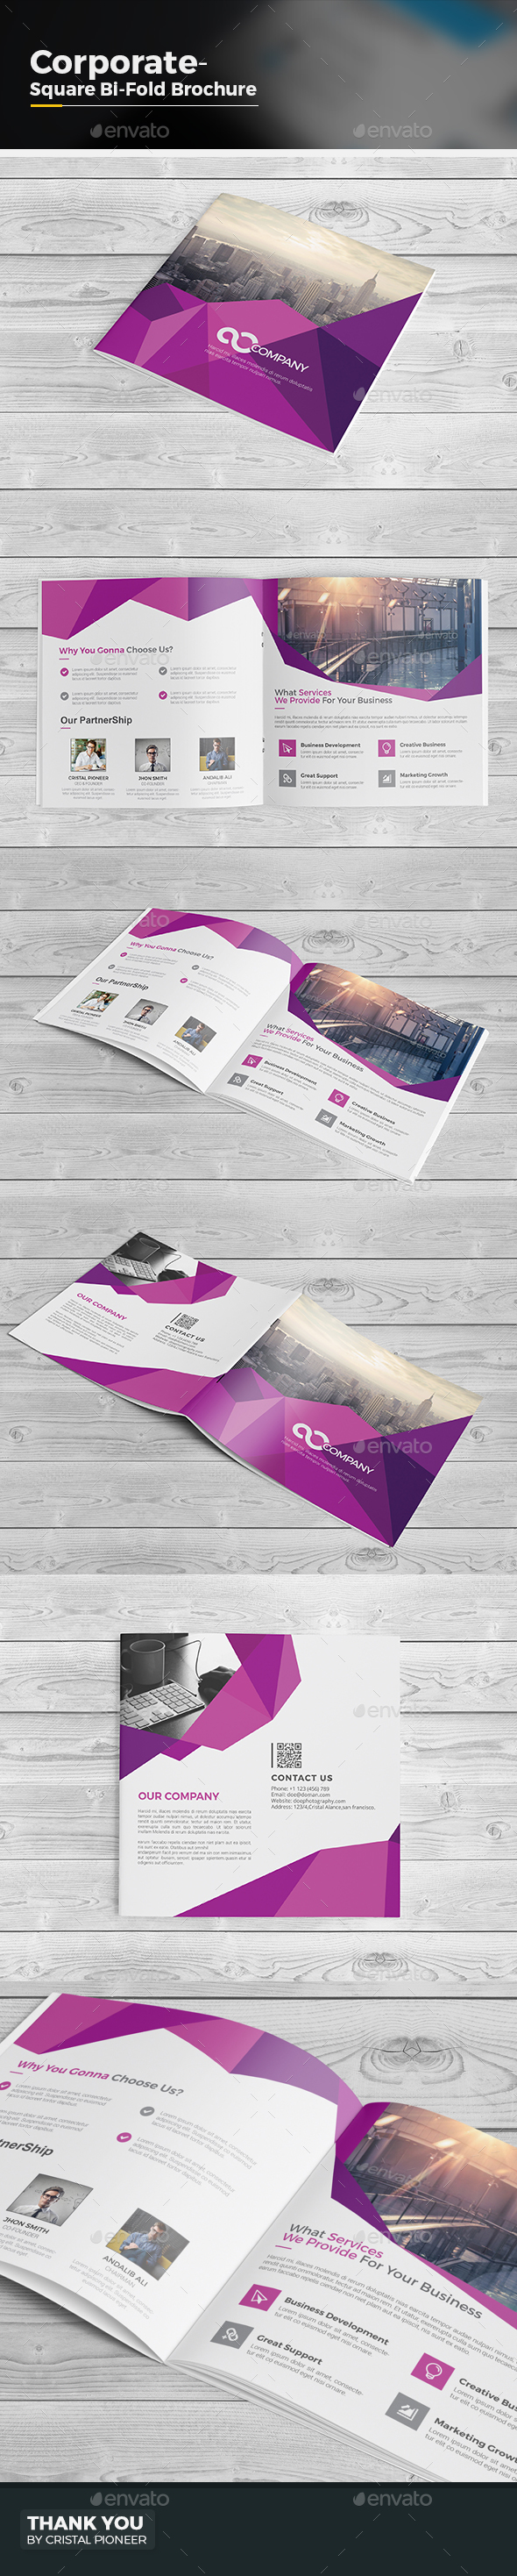 Abstract Square Bi Fold Brochure - Corporate Brochures